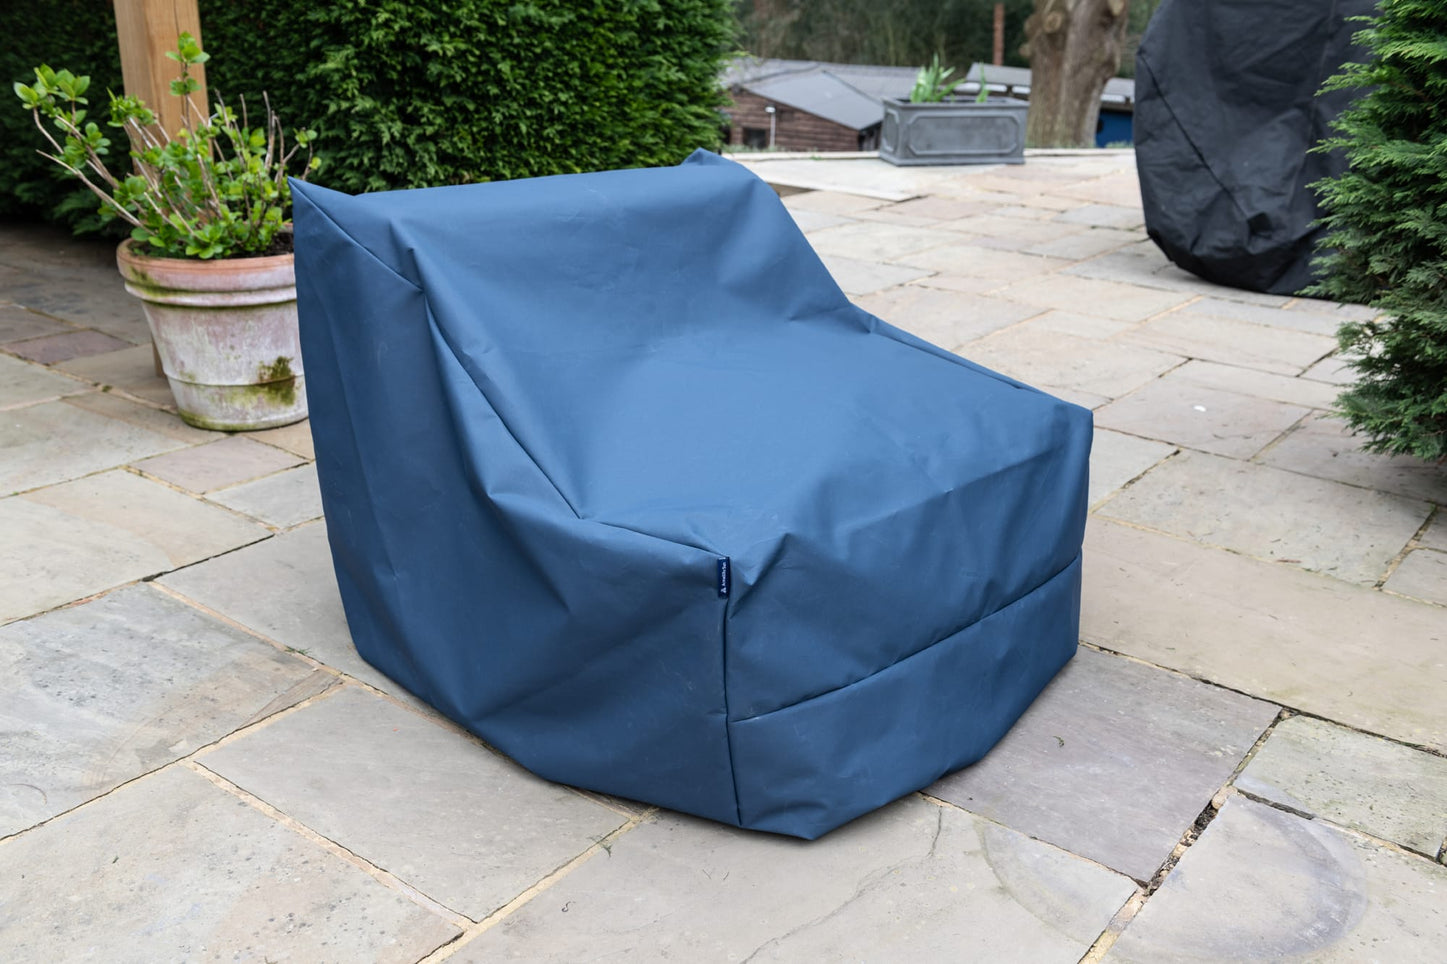 Winter Outdoor Covers For Bean Bag Chairs